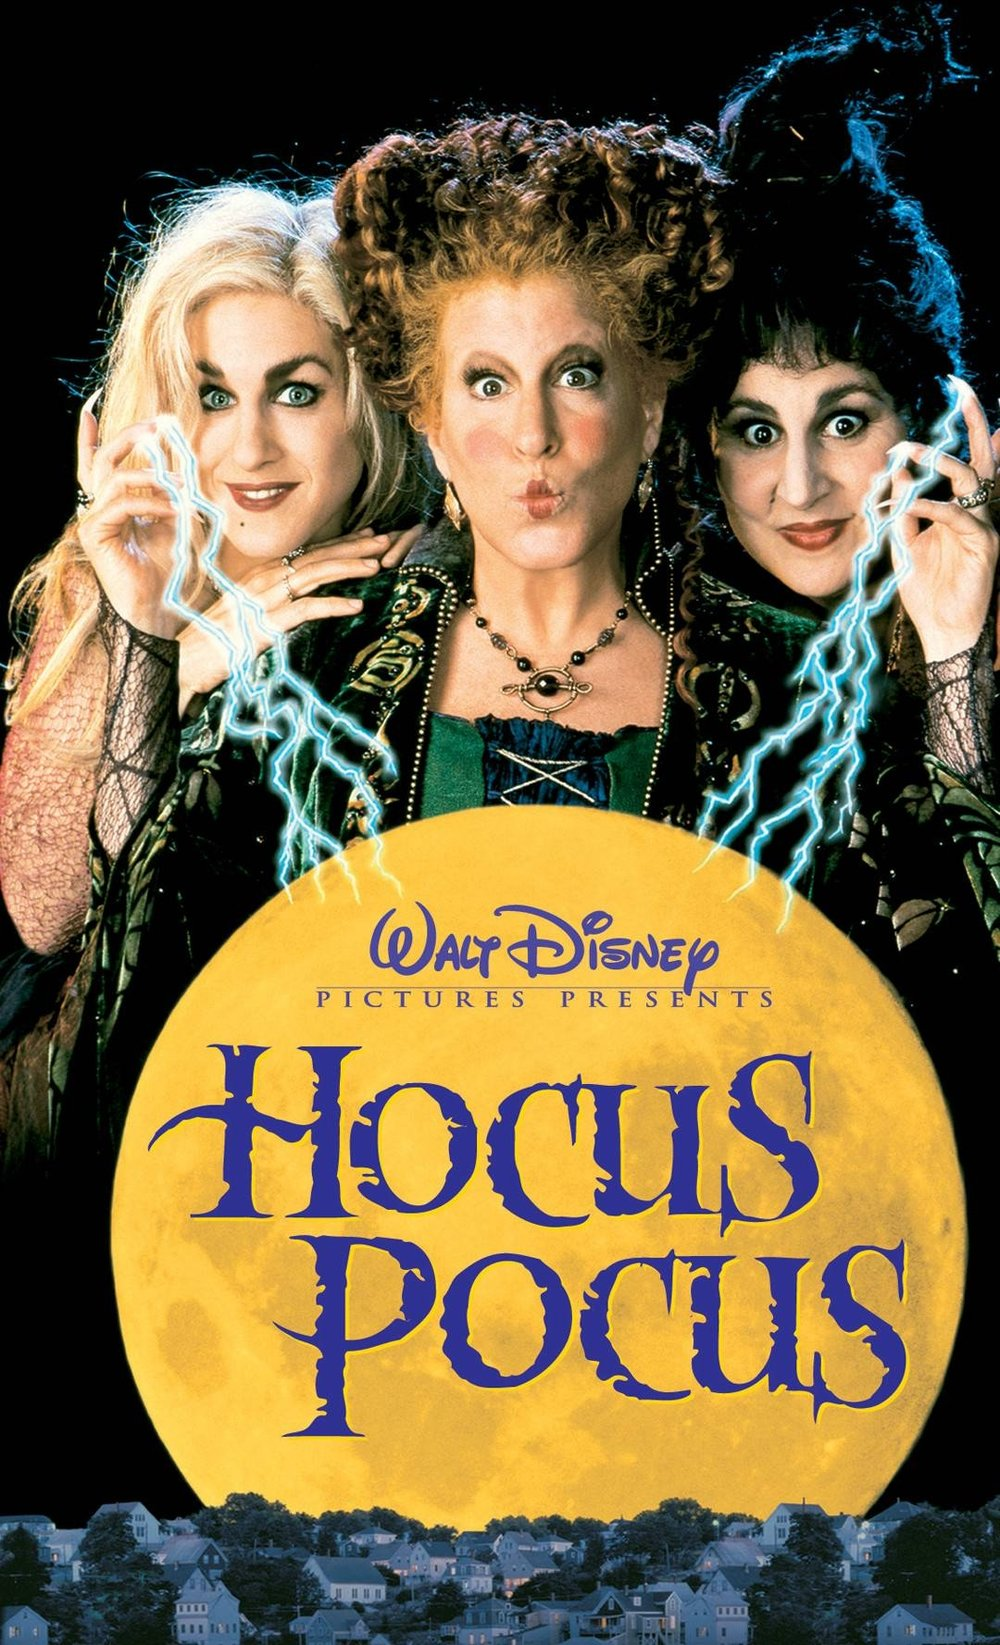 Hocus Pocus Movie Night - Riverviews Artspace, 7-11pm, tickets $12Halloween is upon us and it's time to run amok. Amok! Amok! Amok! Come in costume to confuse the witches and take part in our costume contest!Cash bar for refreshments including wine, beer, soda and popcorn.